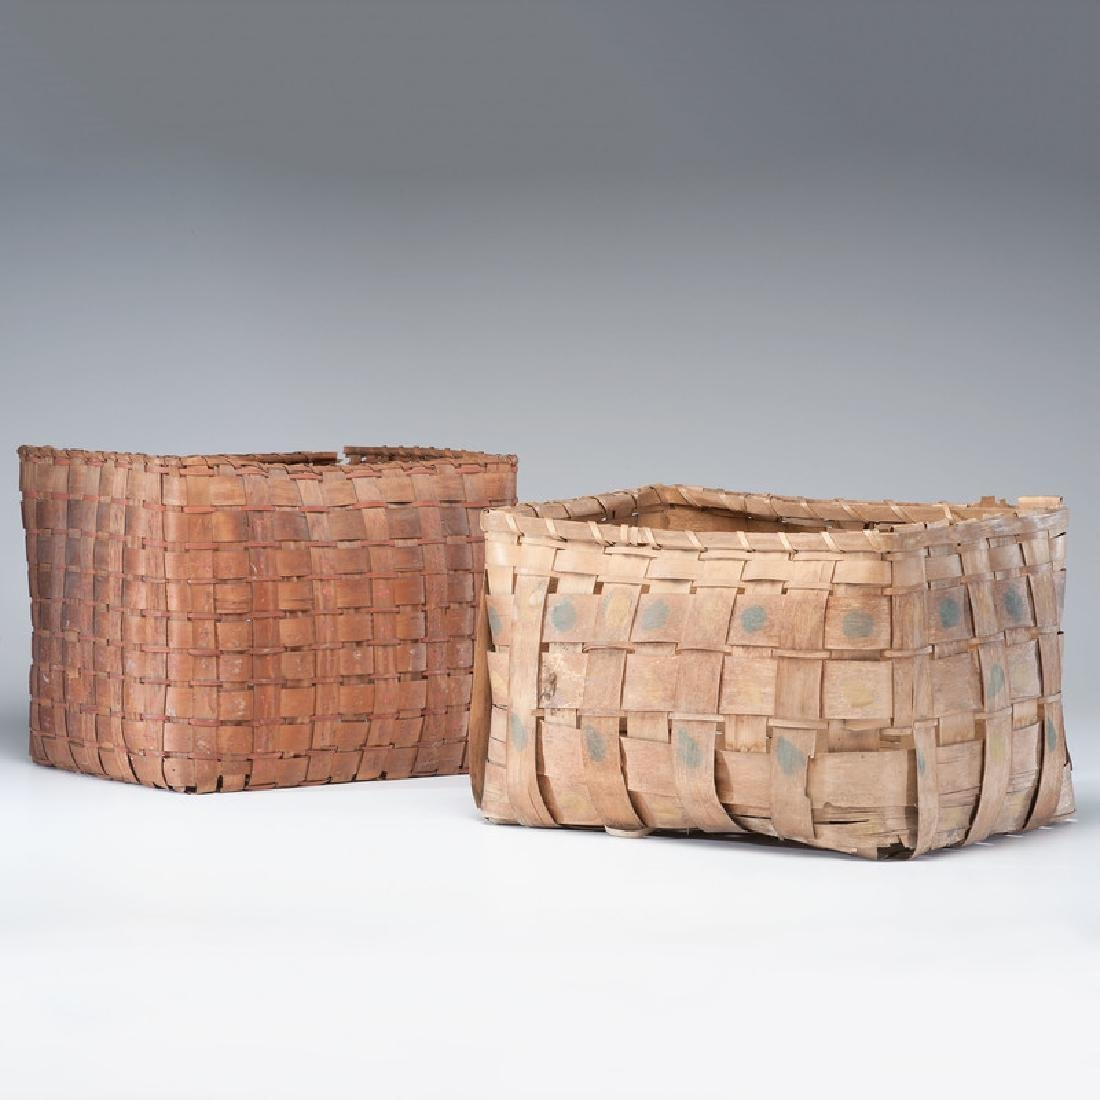 Haudenosaunee (Iroquois) Potato Stamped Storage Baskets